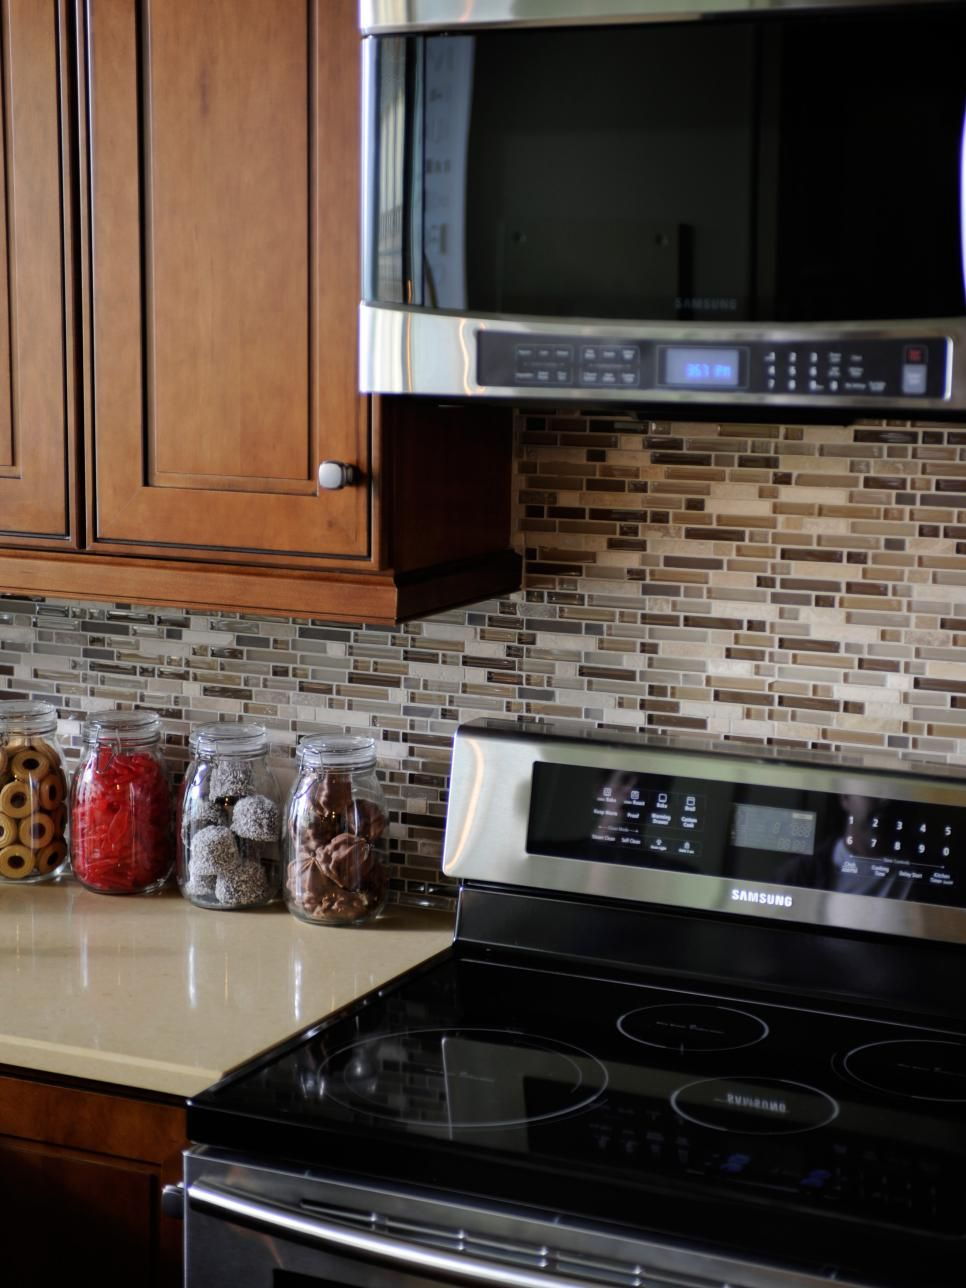 Marvelous HGTV Has Dozens Of Pictures Of Beautiful Kitchen Backsplash Ideas For  Inspiration On Your Own Kitchen